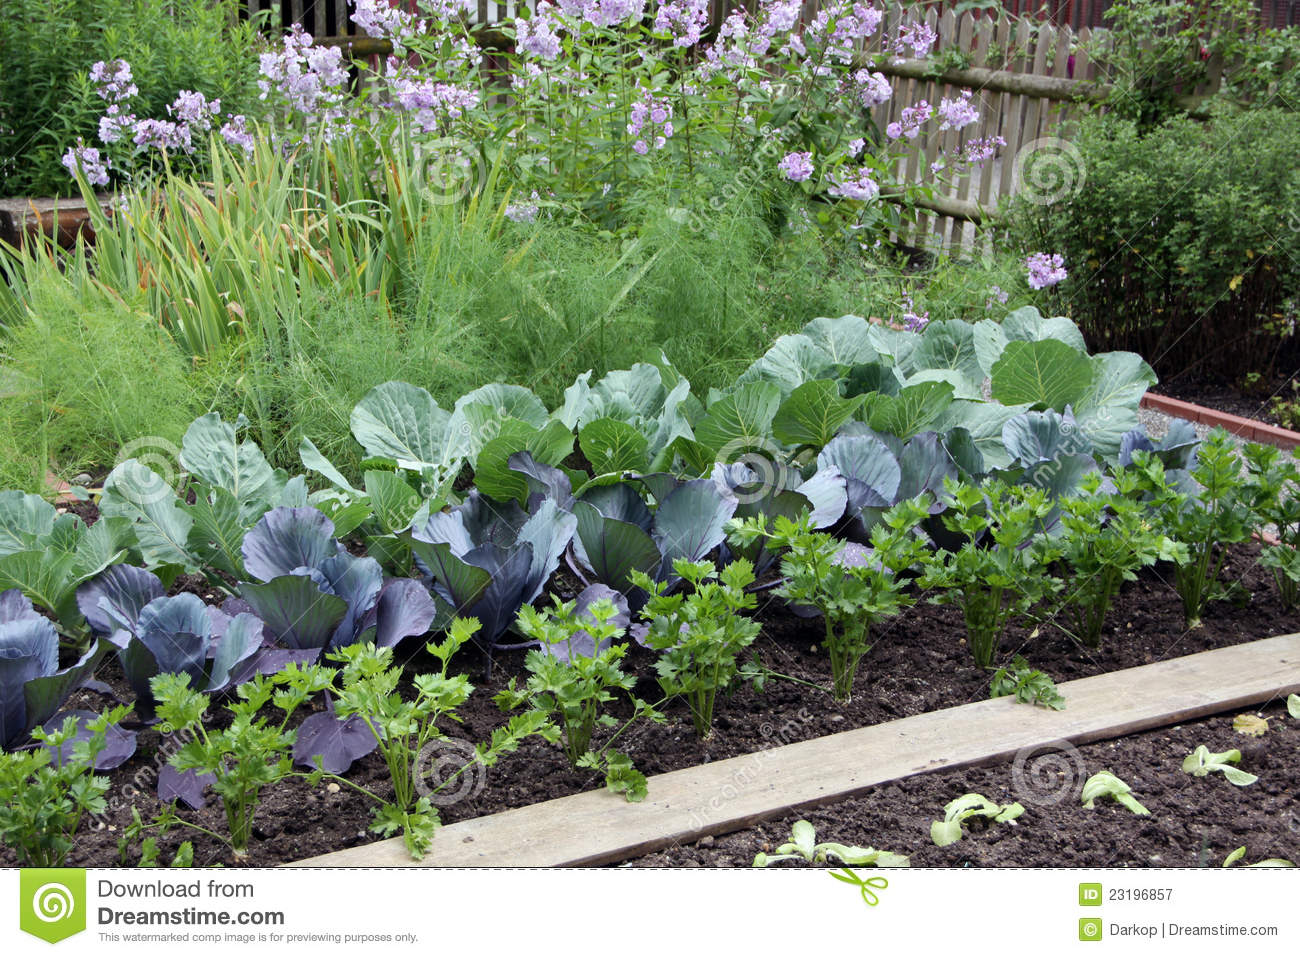 Vegetable Garden Bed Stock Image. Image Of Garden, Plants